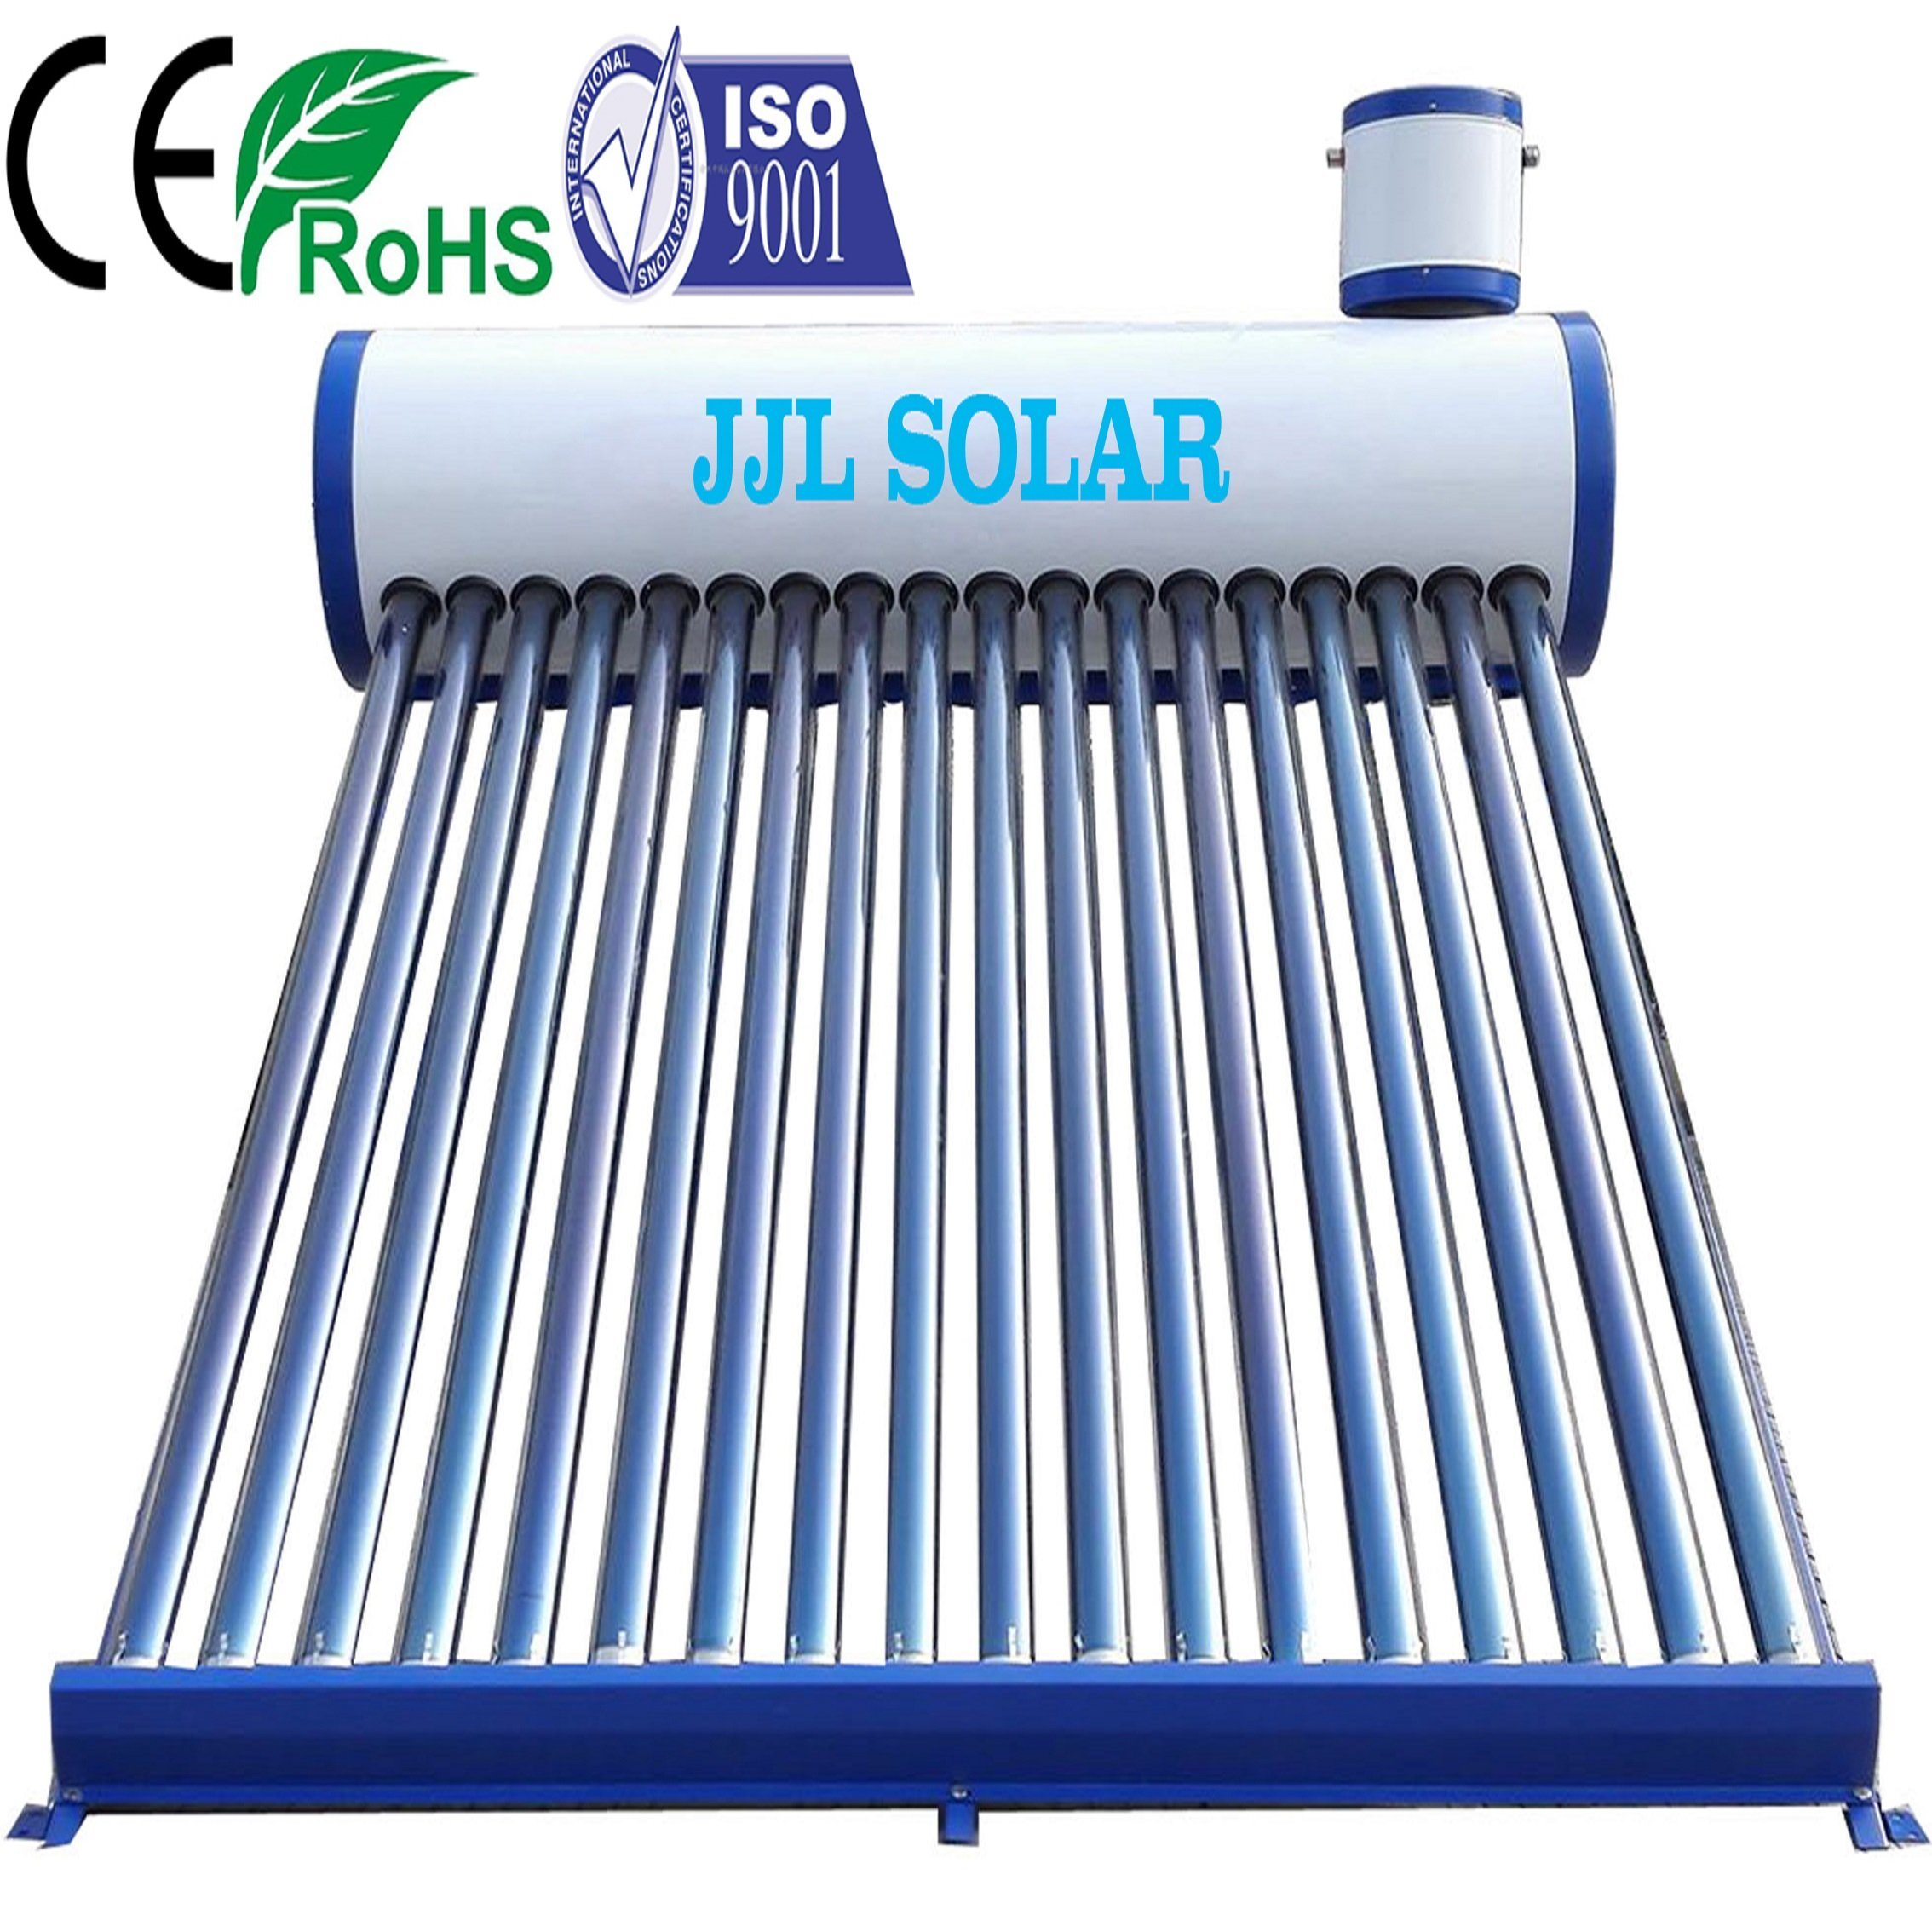 [Hot Item] Jjl Solar Energy Non-Pressure Solar Water Heater System